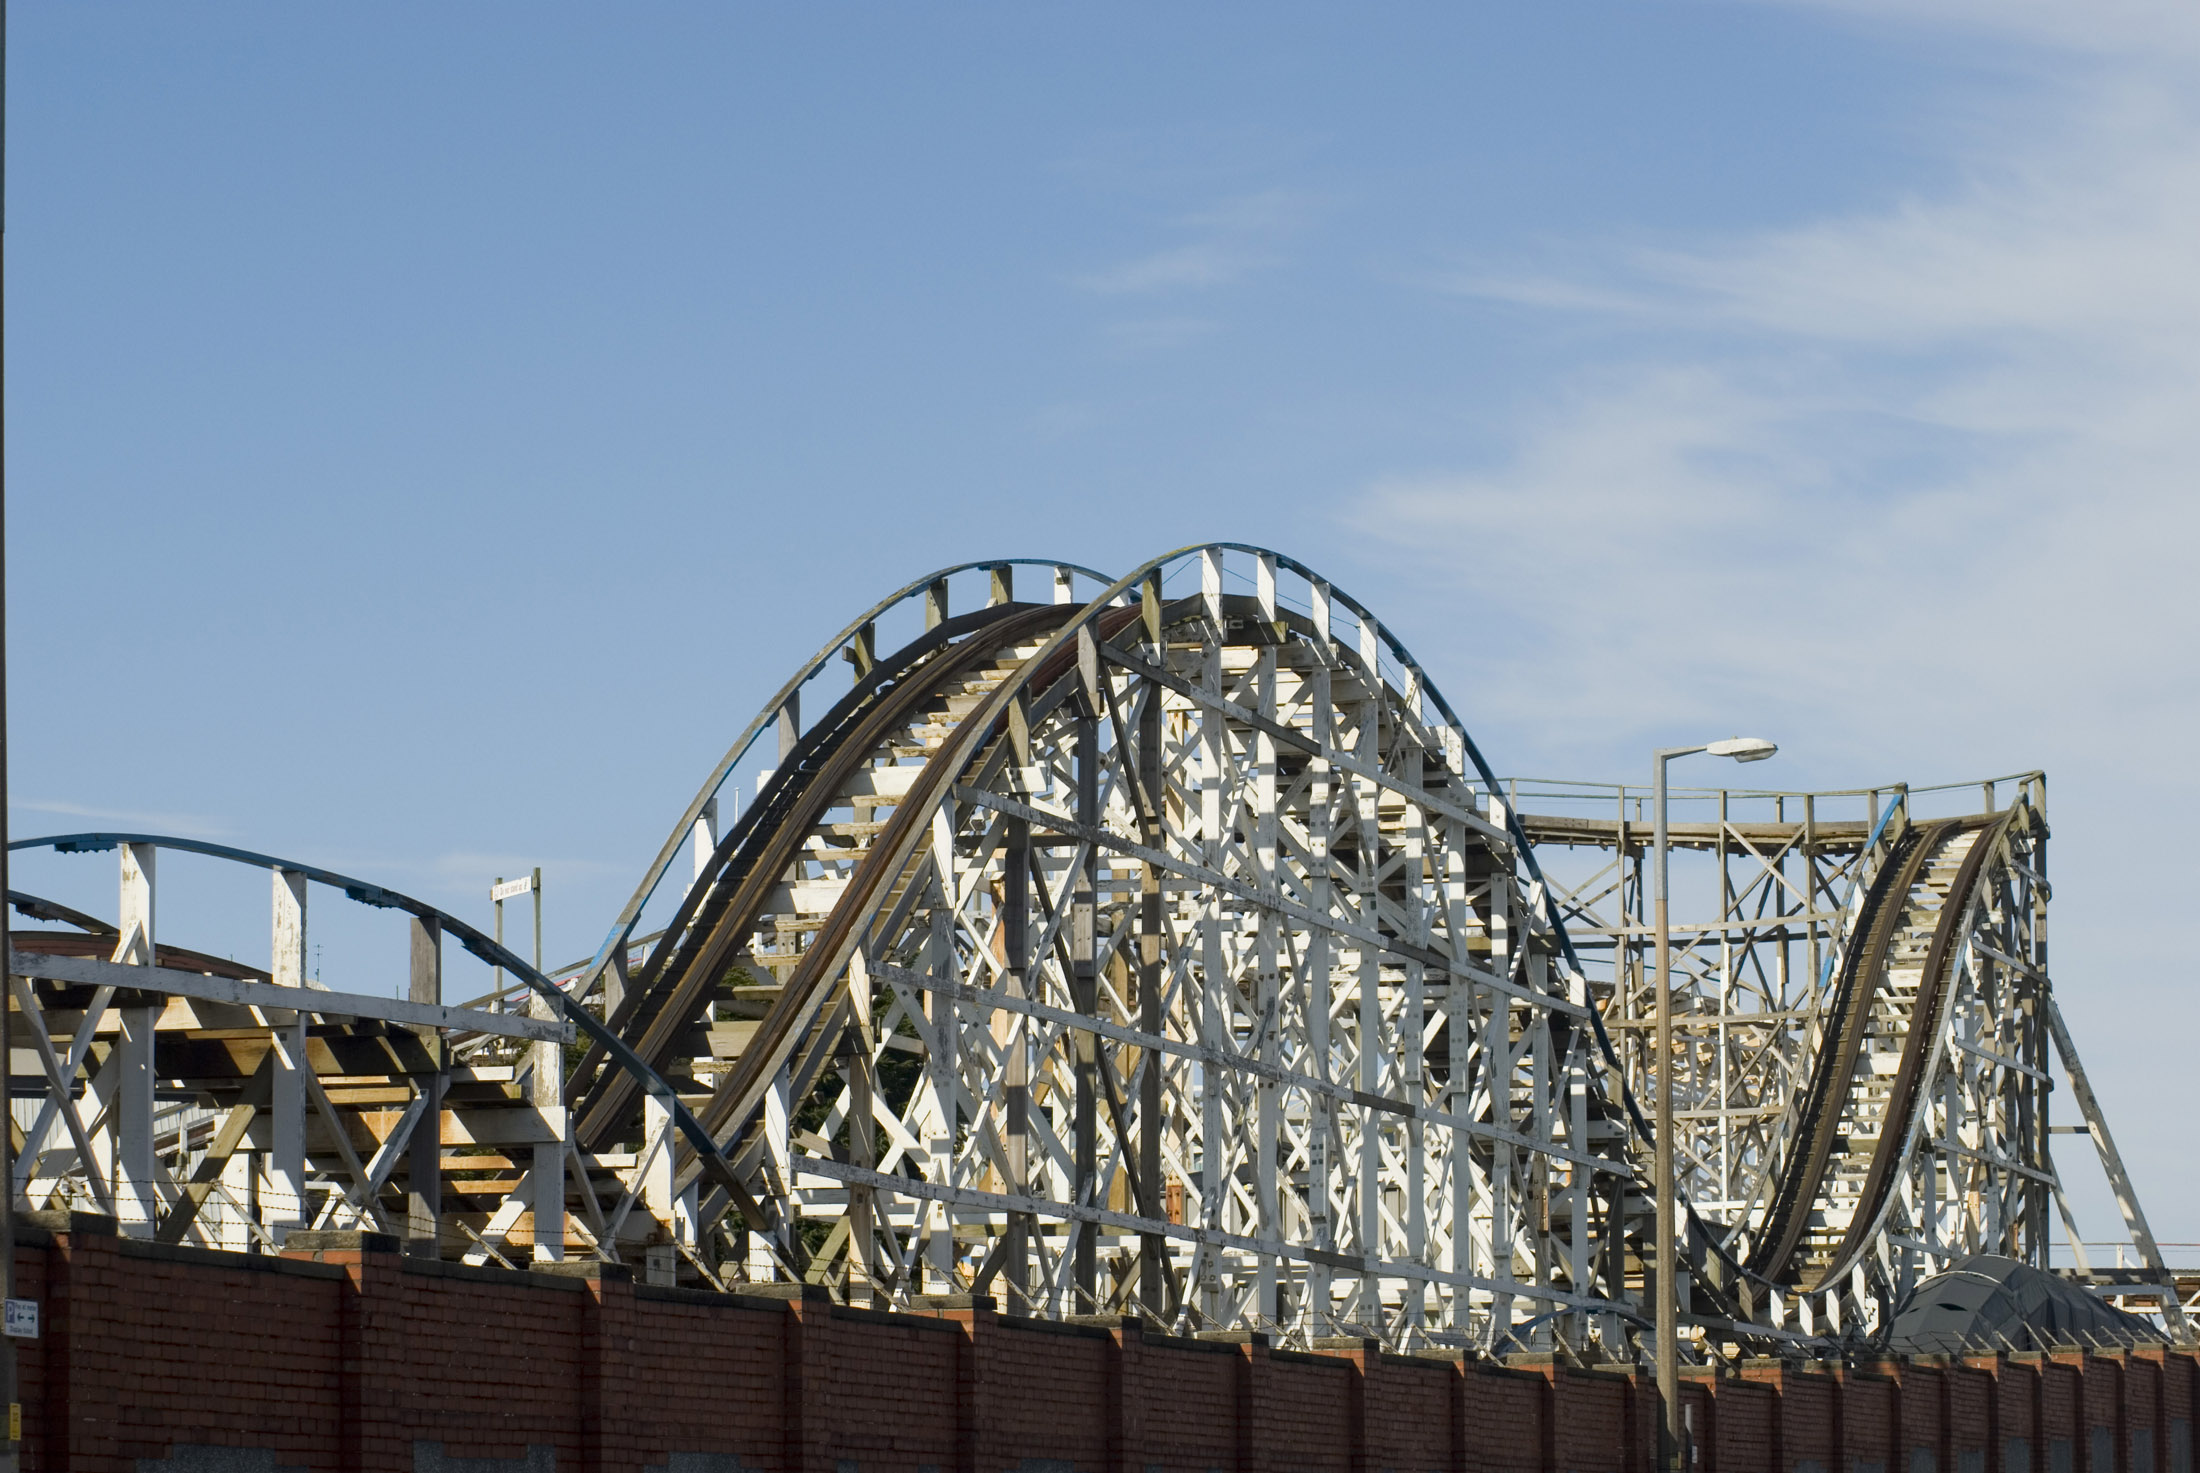 old wooden rollercoaster track at blackpool pleasure beach